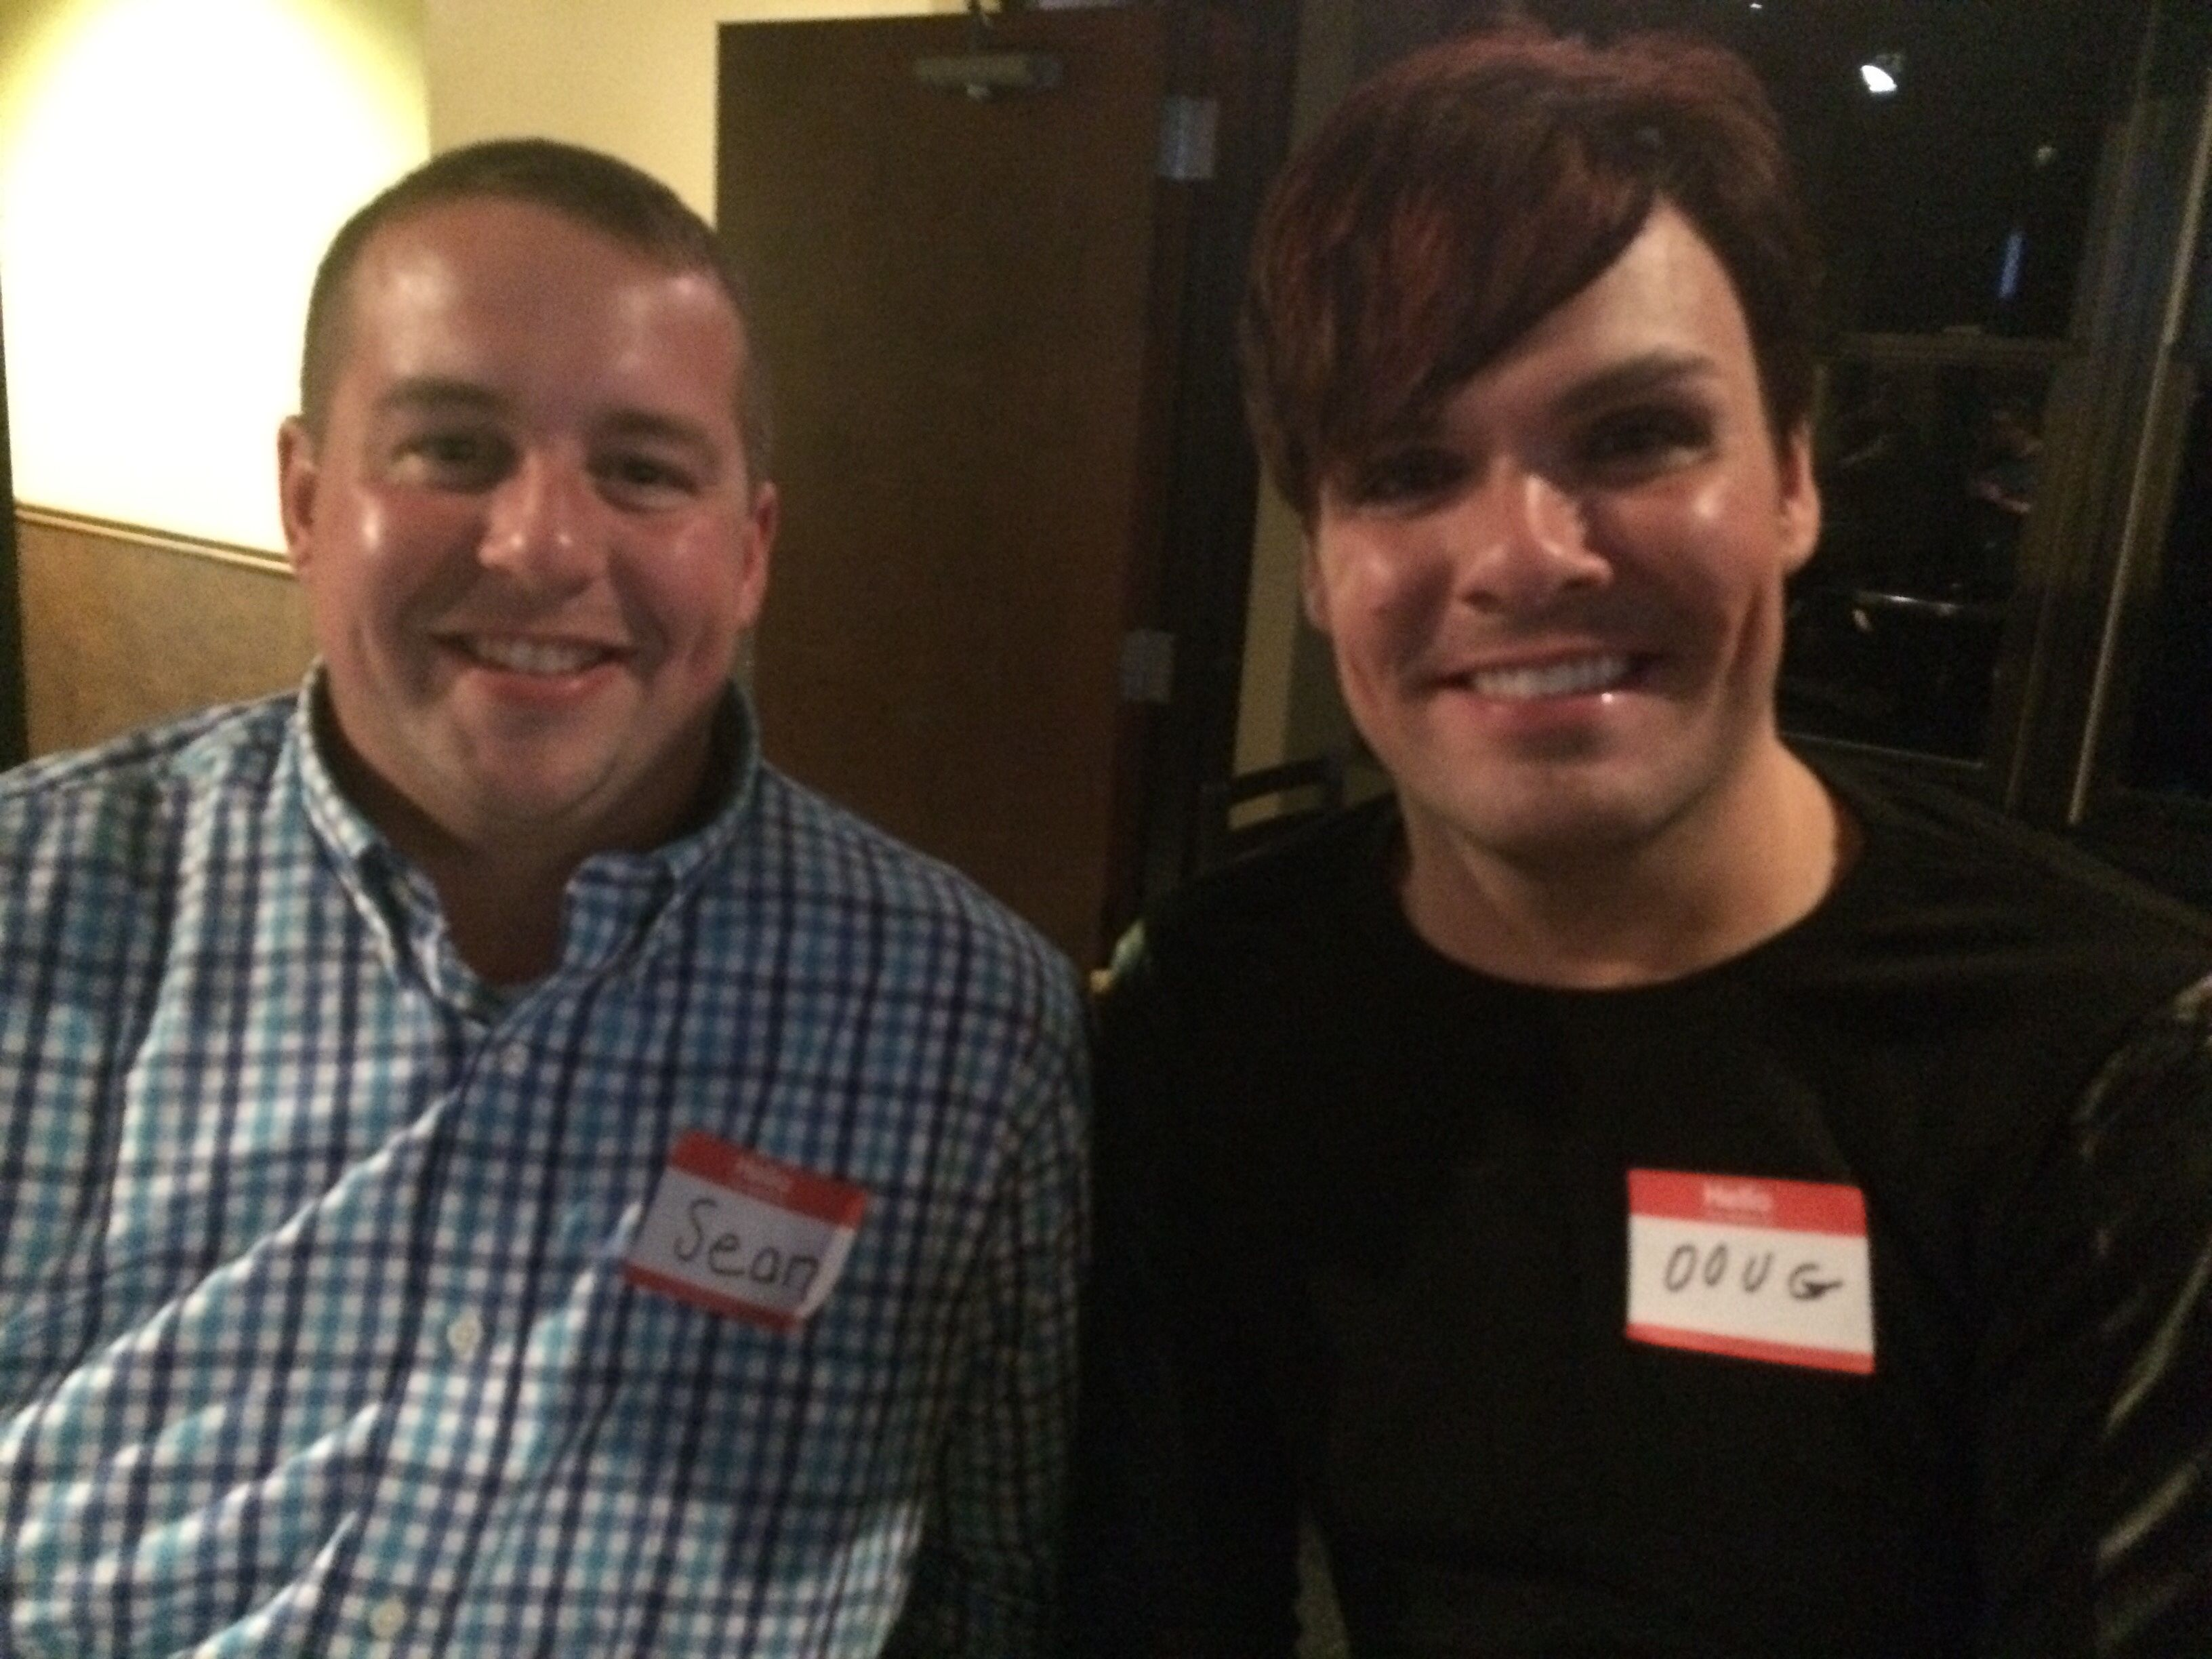 Photos - Single Out dinner group for LGBTQ Singles (Pittsburgh, PA ...